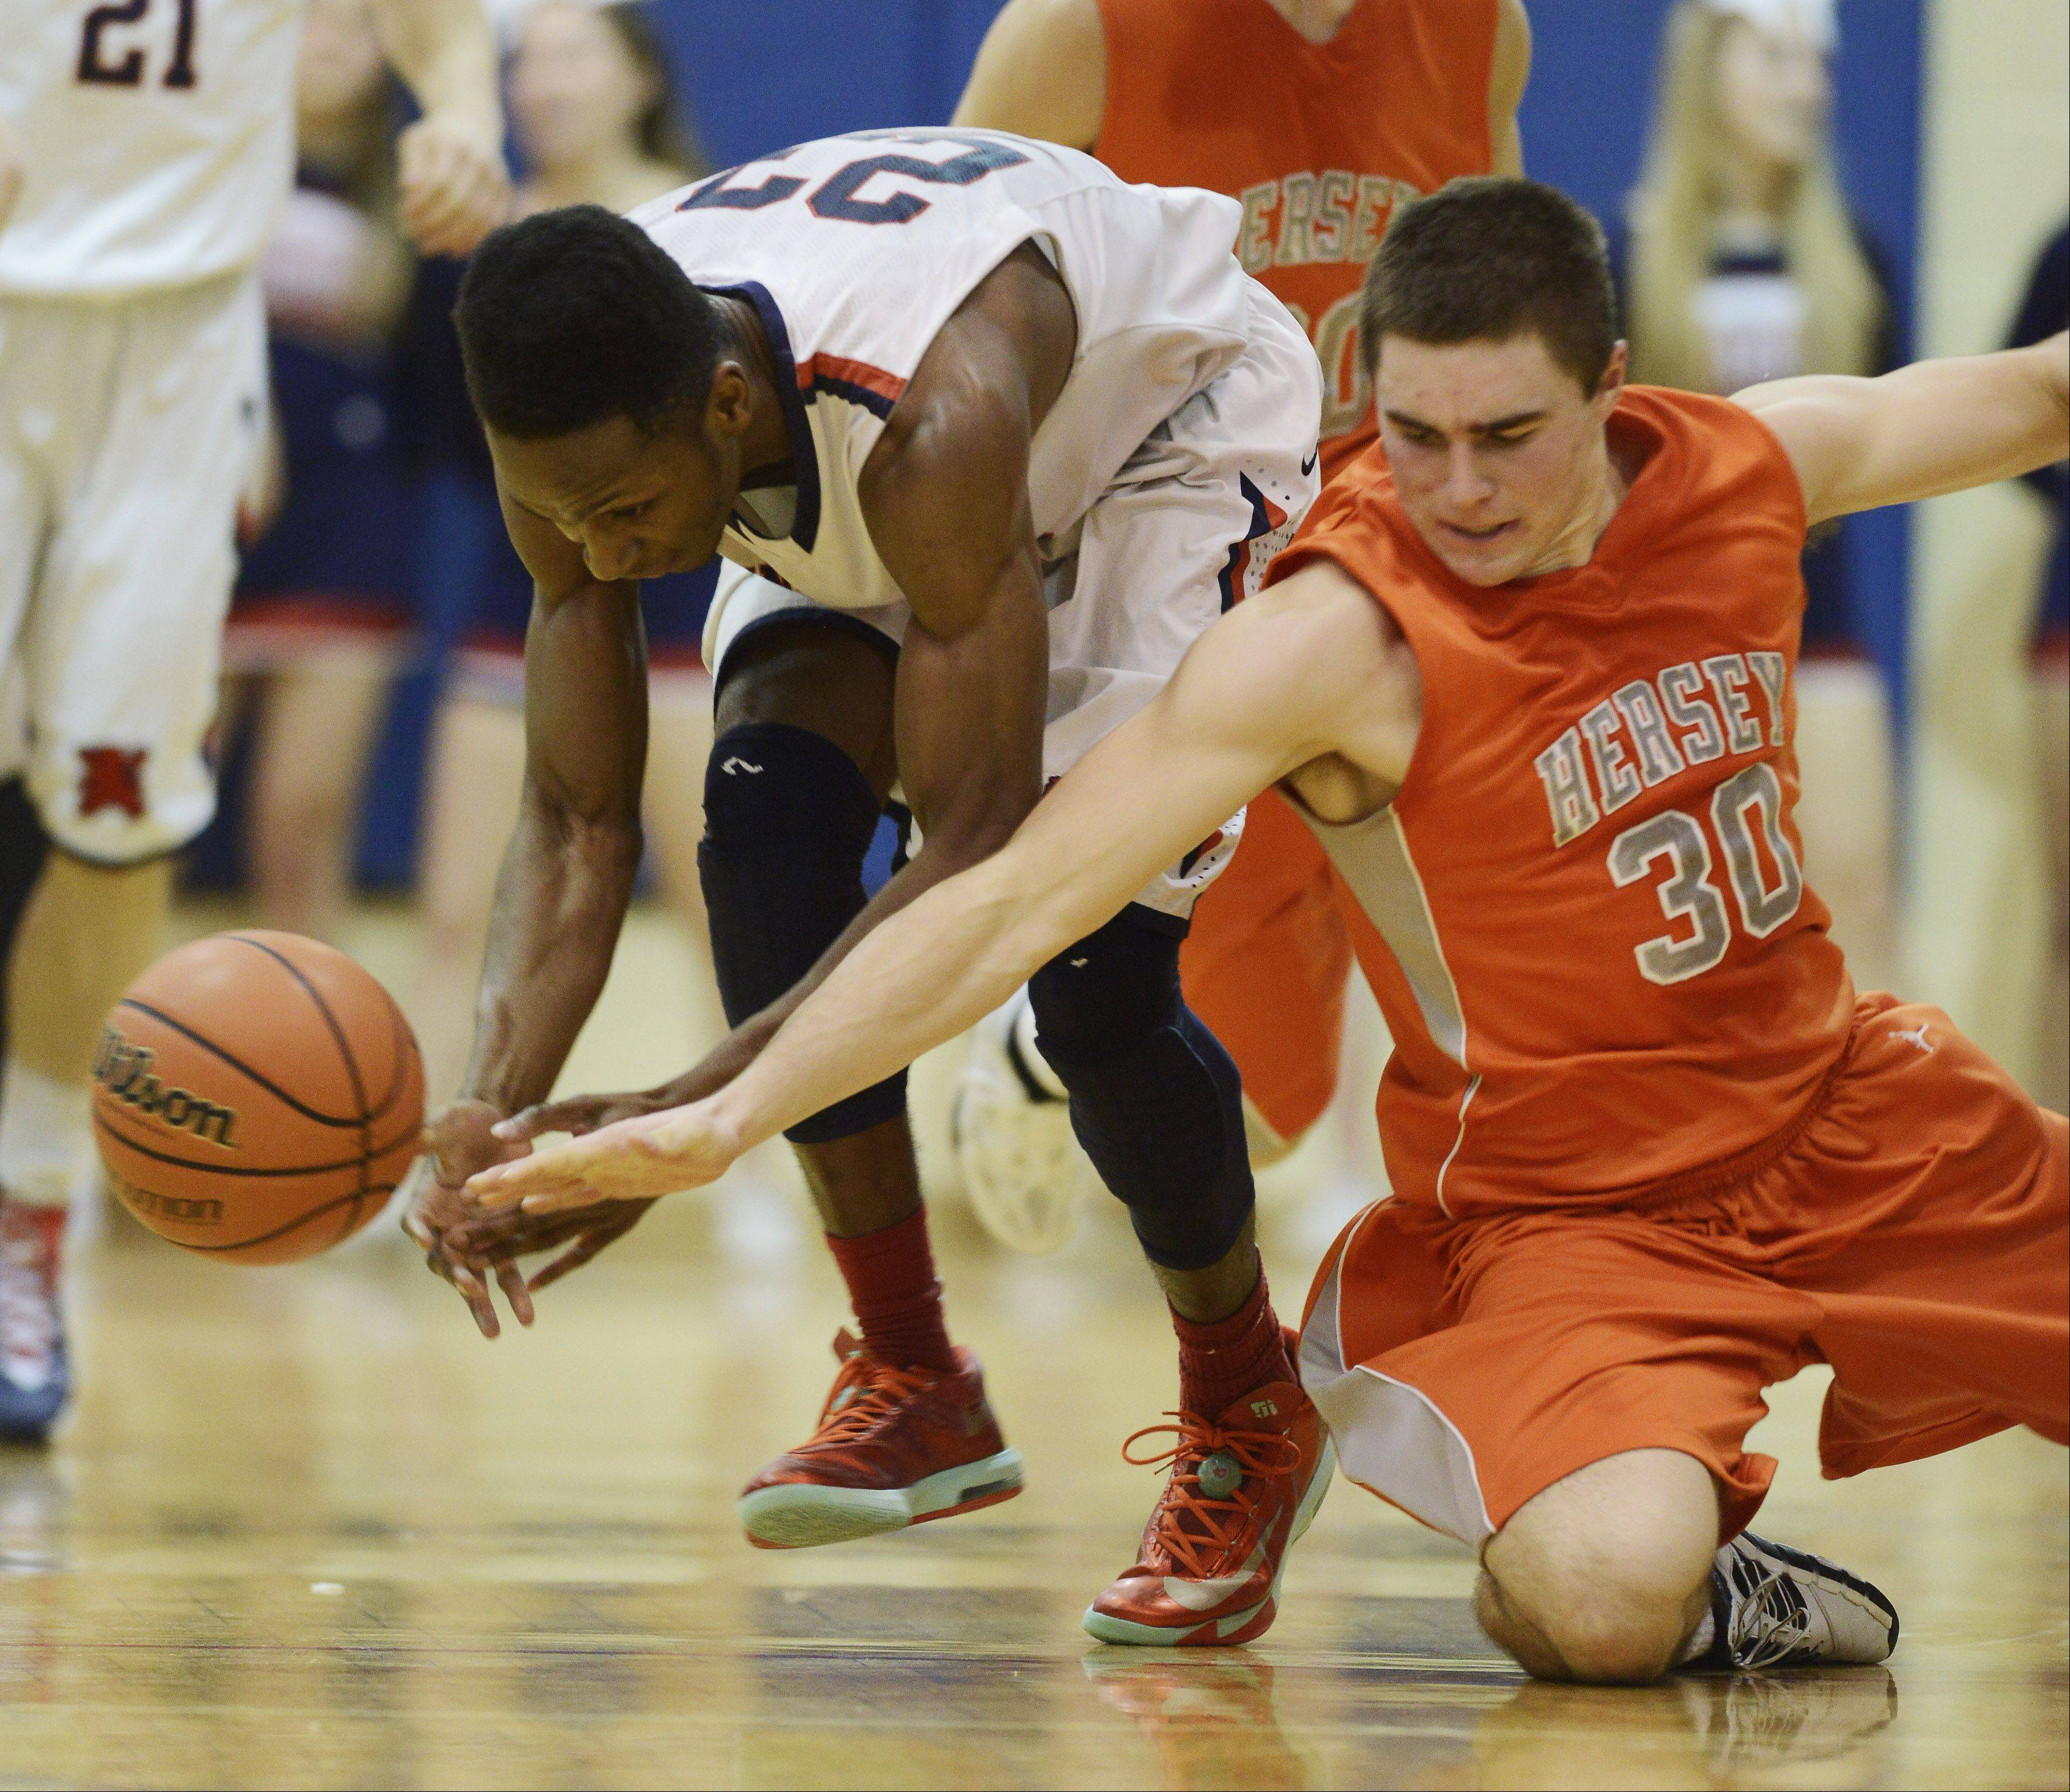 St. Viator's Ore Arogundade, left, and Heresy's Grant Burke eye the loose ball Wednesday in Arlington Heights.